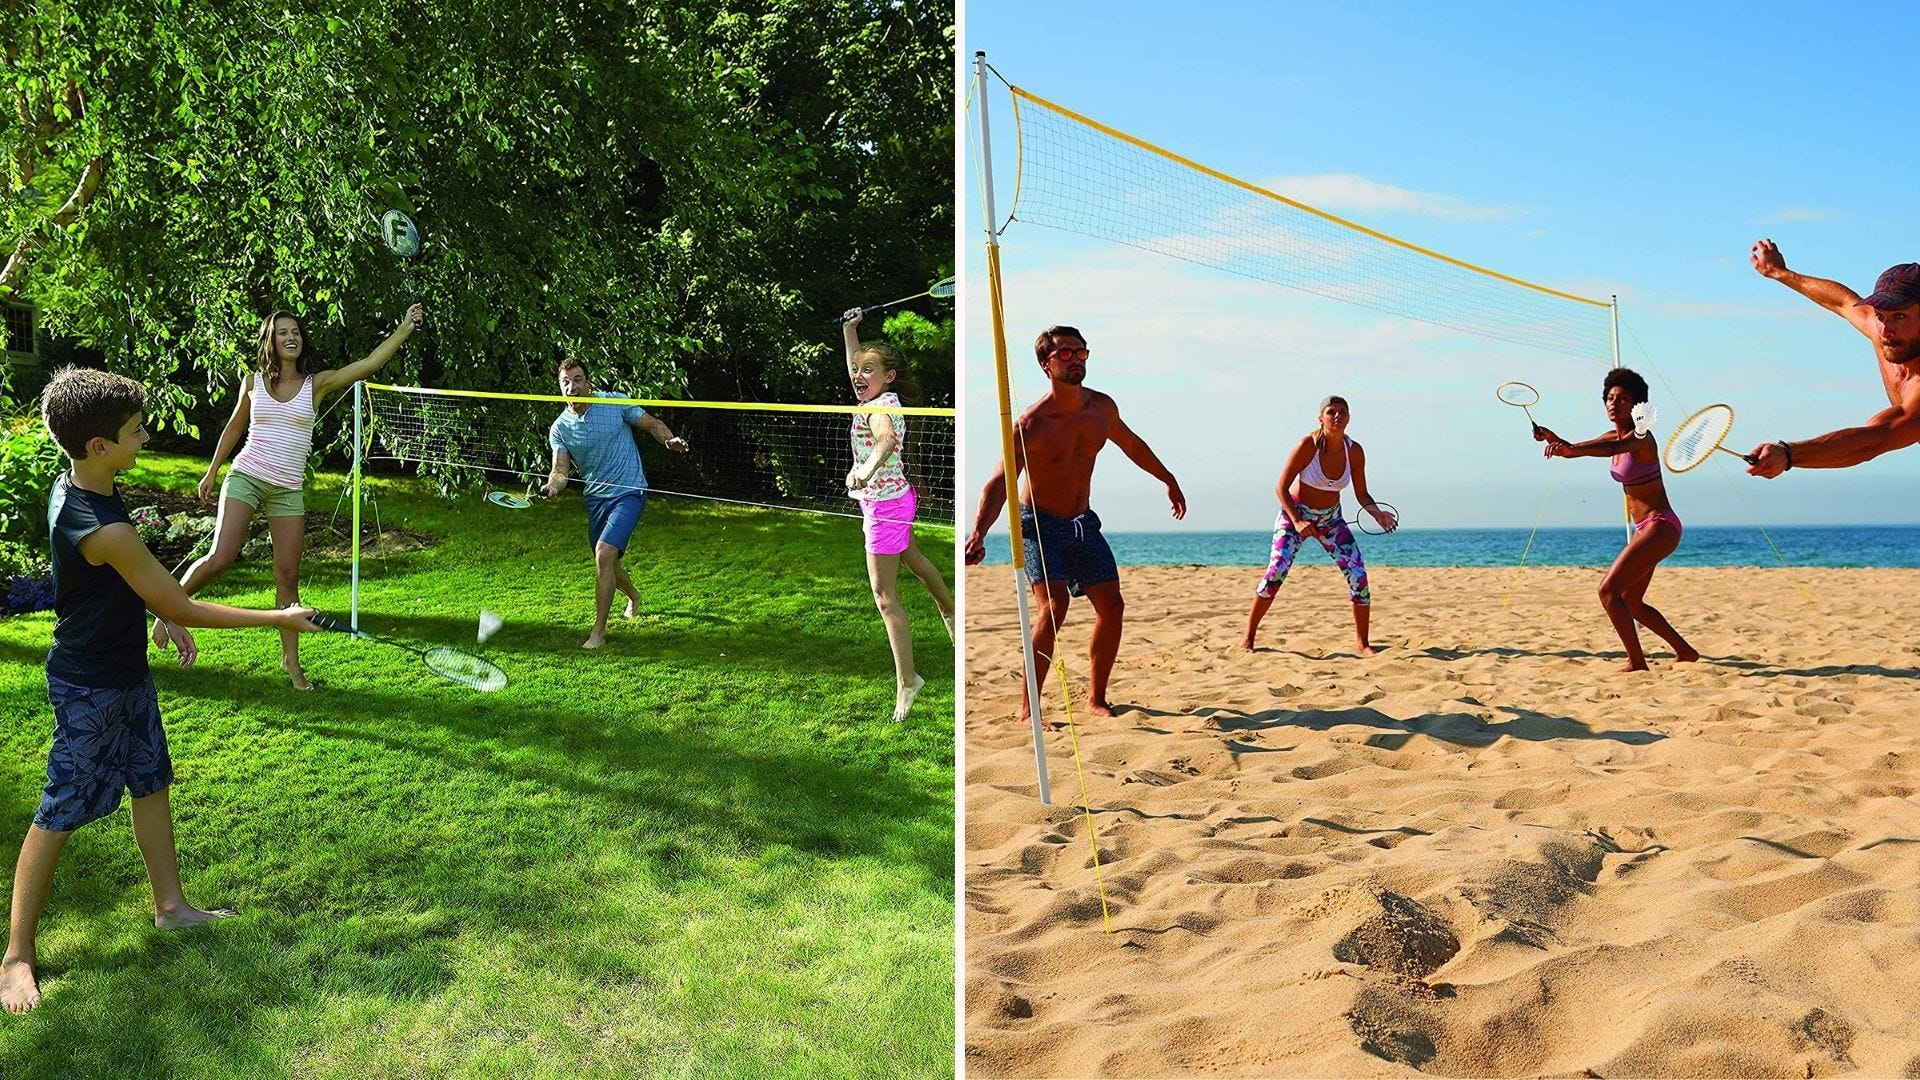 People playing badminton on a grassy lawn and on a beach